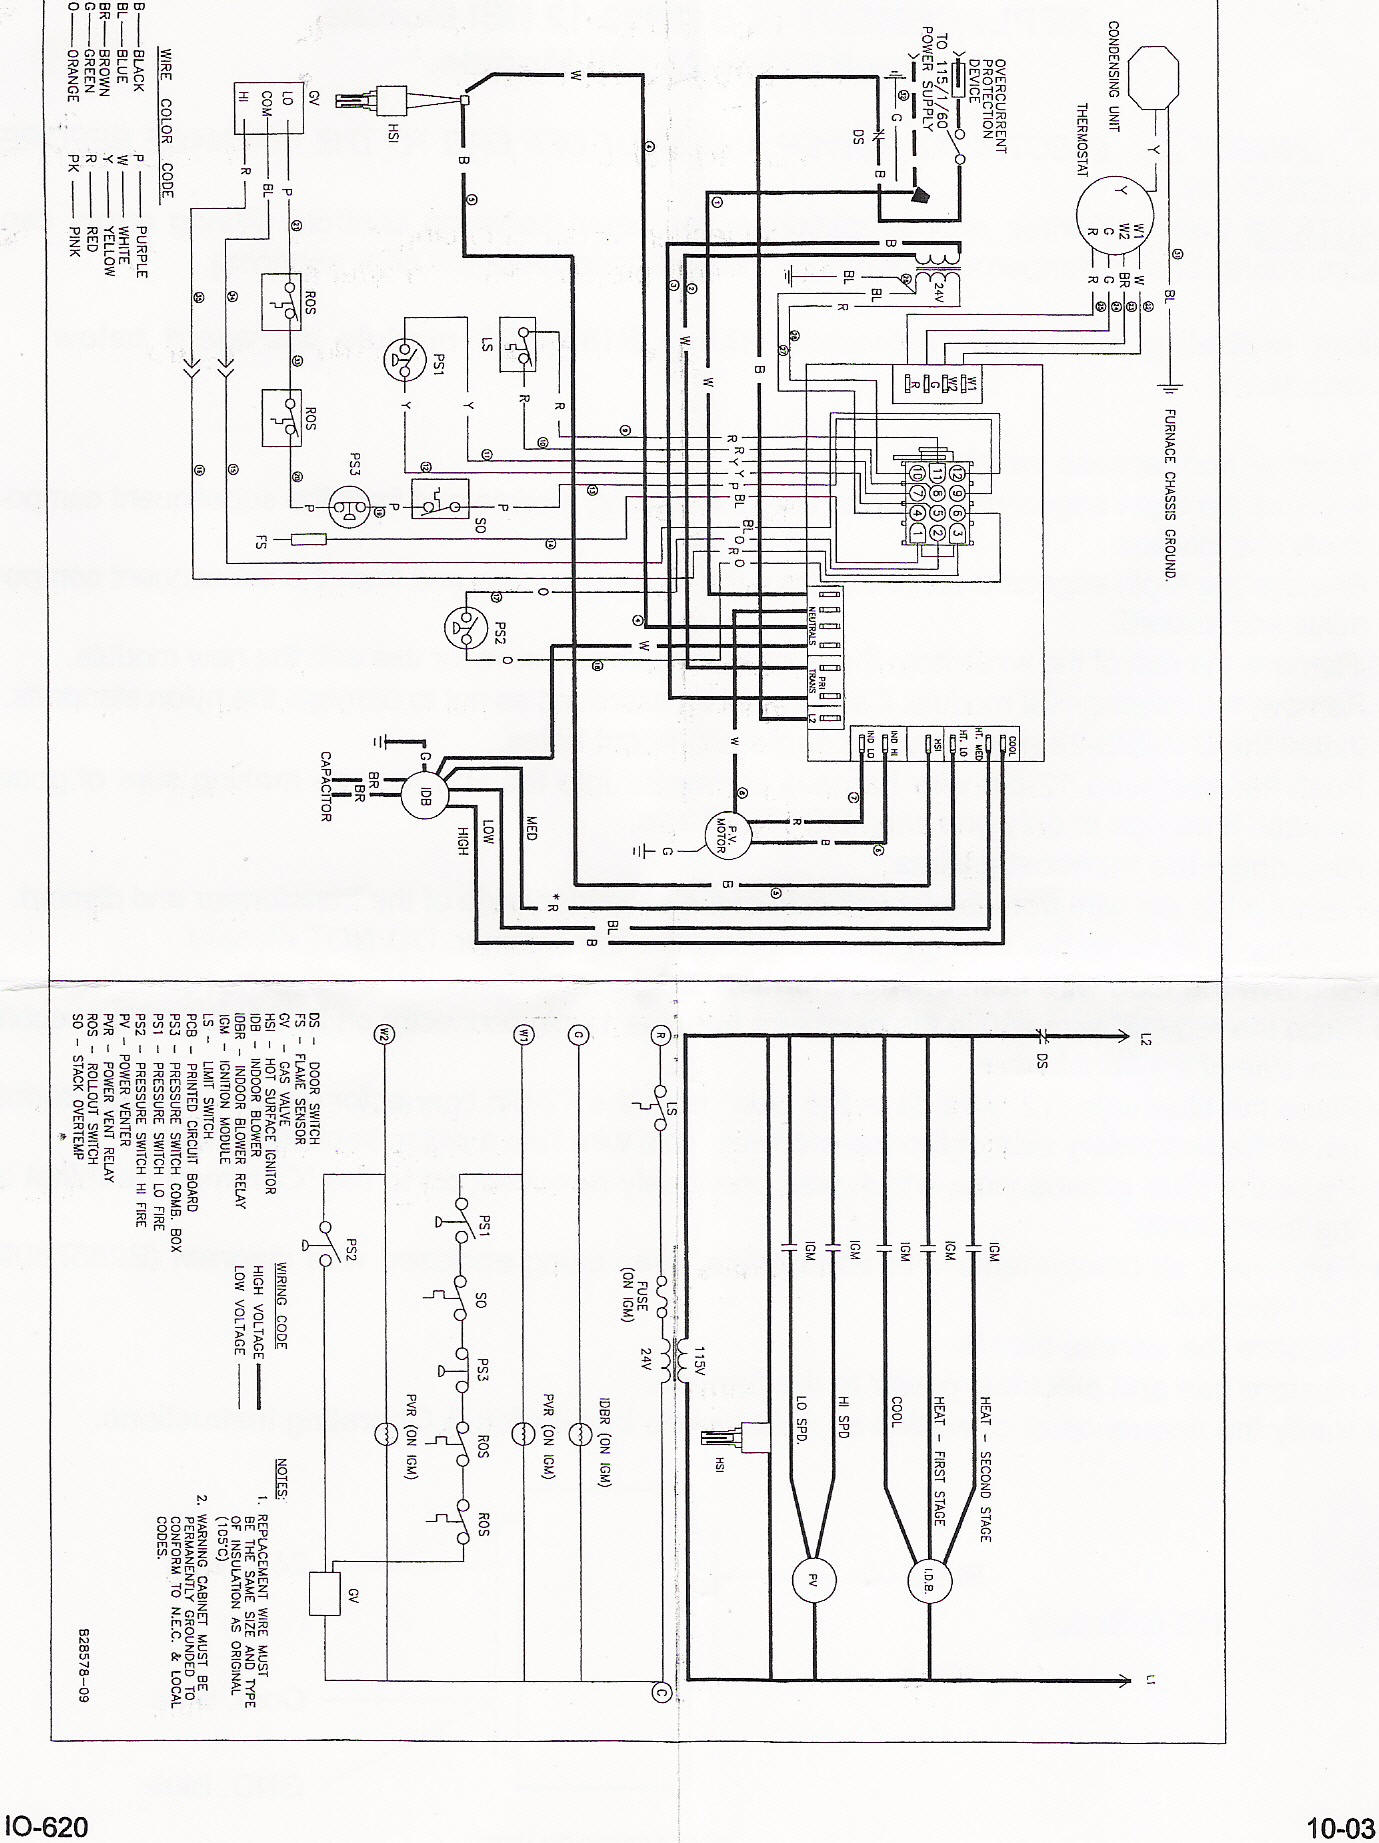 goodma2 instr goodman control board b18099 23 instructions pcbfm103s wiring diagram at bakdesigns.co